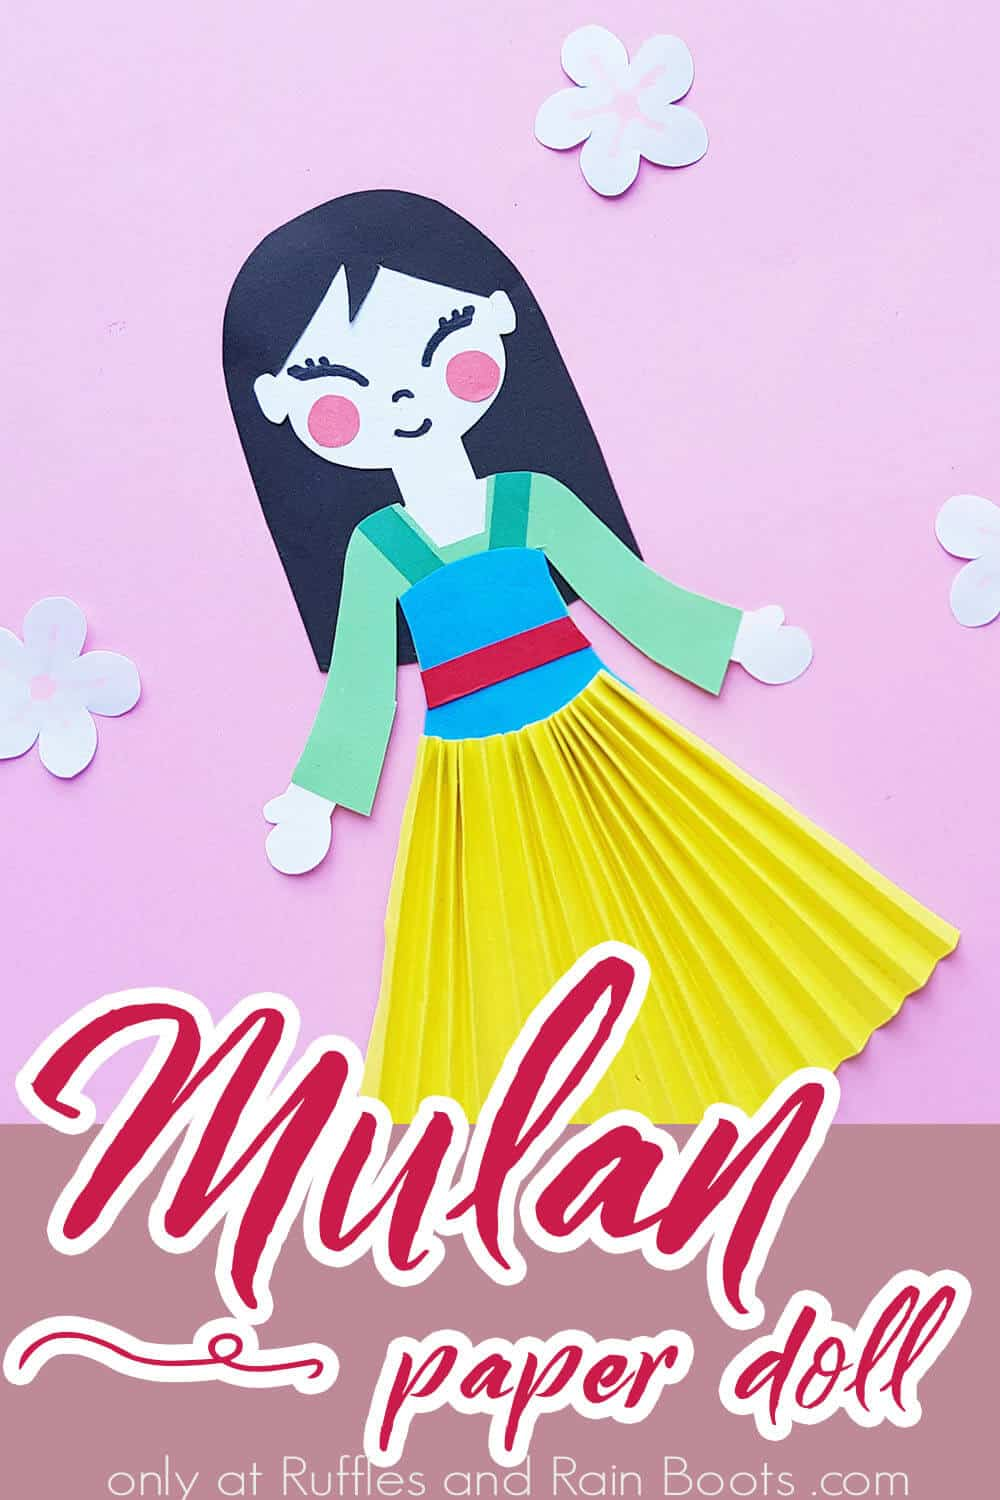 adorable mulan paper doll craft kids can make with text which reads mulan paper doll